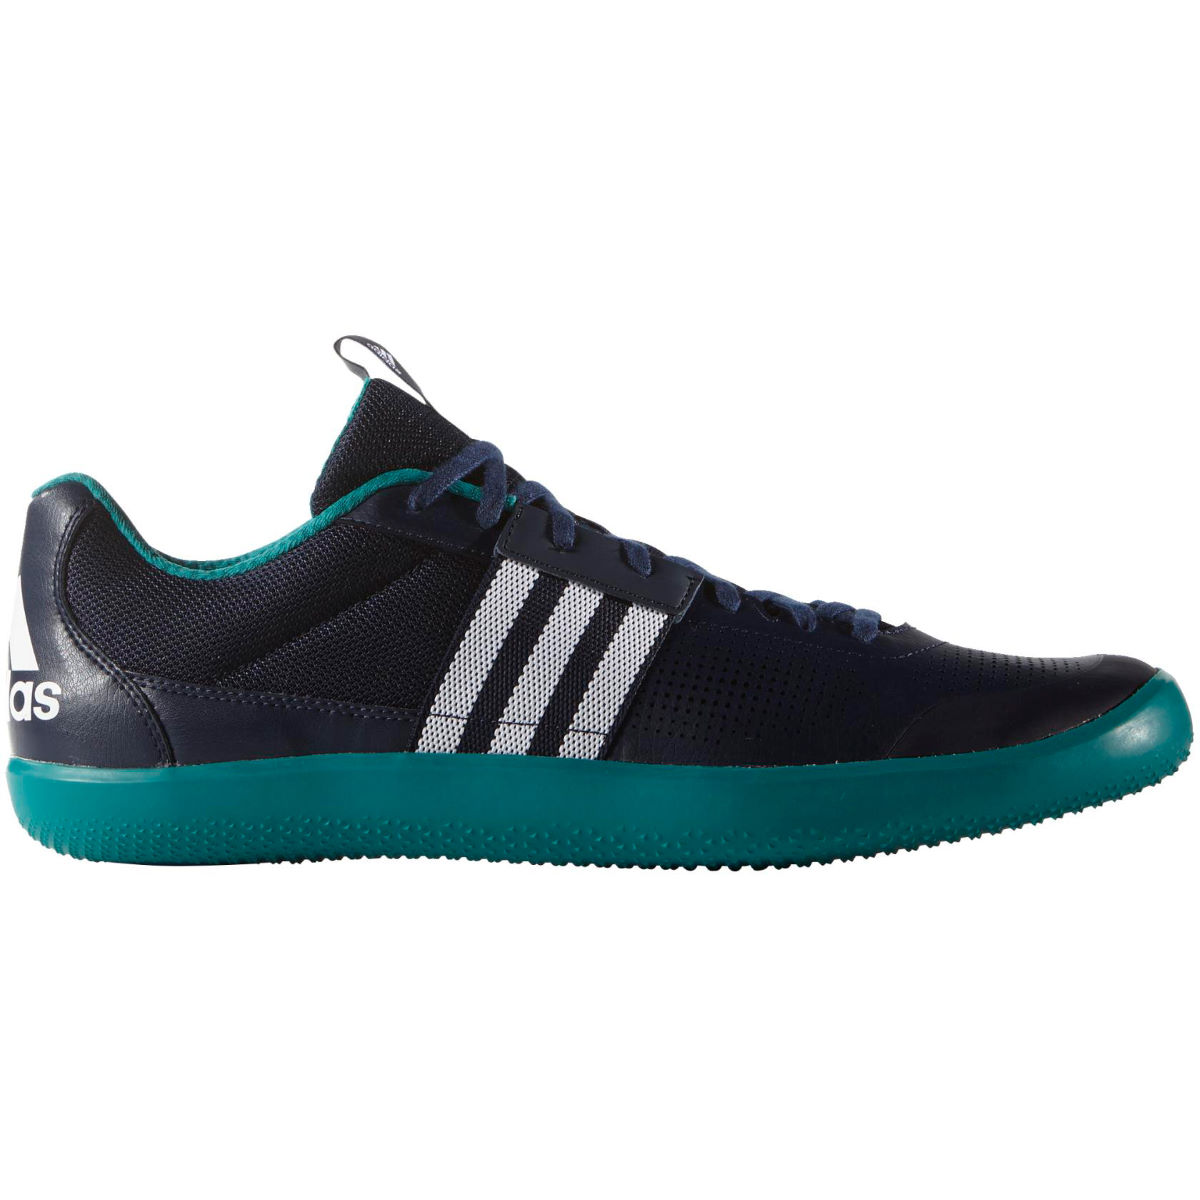 Adidas Throwstar Shoes (AW16)   Spiked Running Shoes